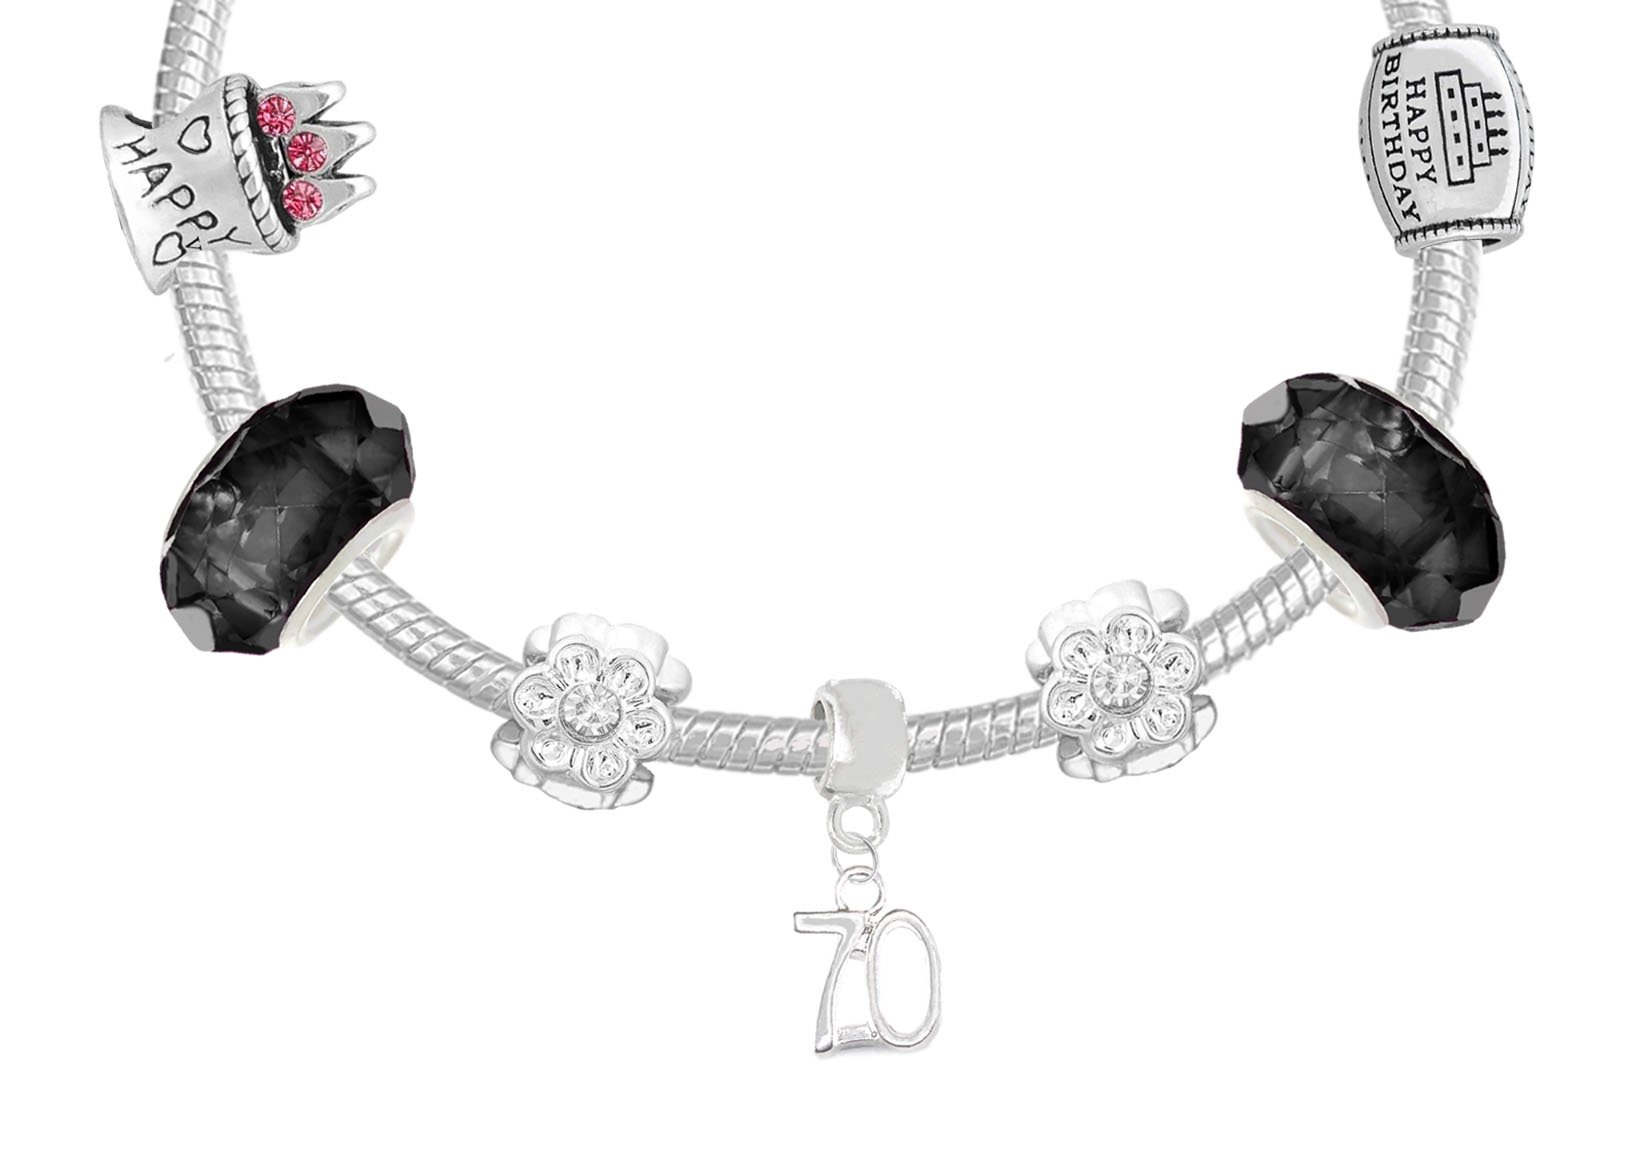 70th Birthday Good Luck Lucky Black Silver Pandora Style Bracelet With Charms Gift Box Jewelry by Charm Buddy (Image #5)